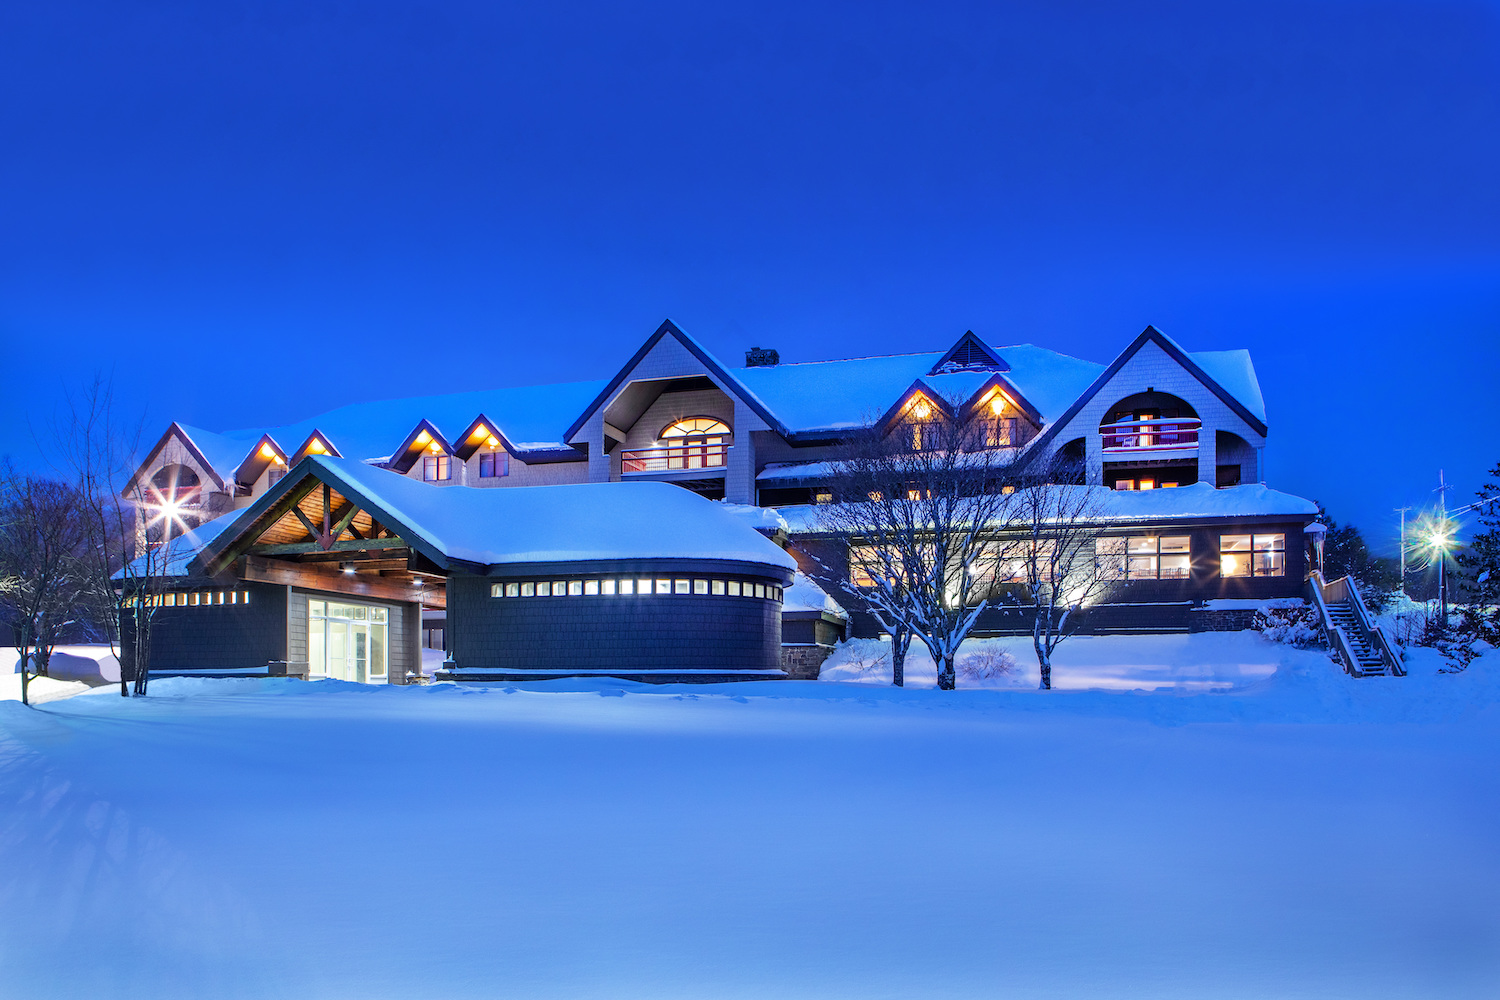 MCR acquires 102-room mountain lodge in East USA